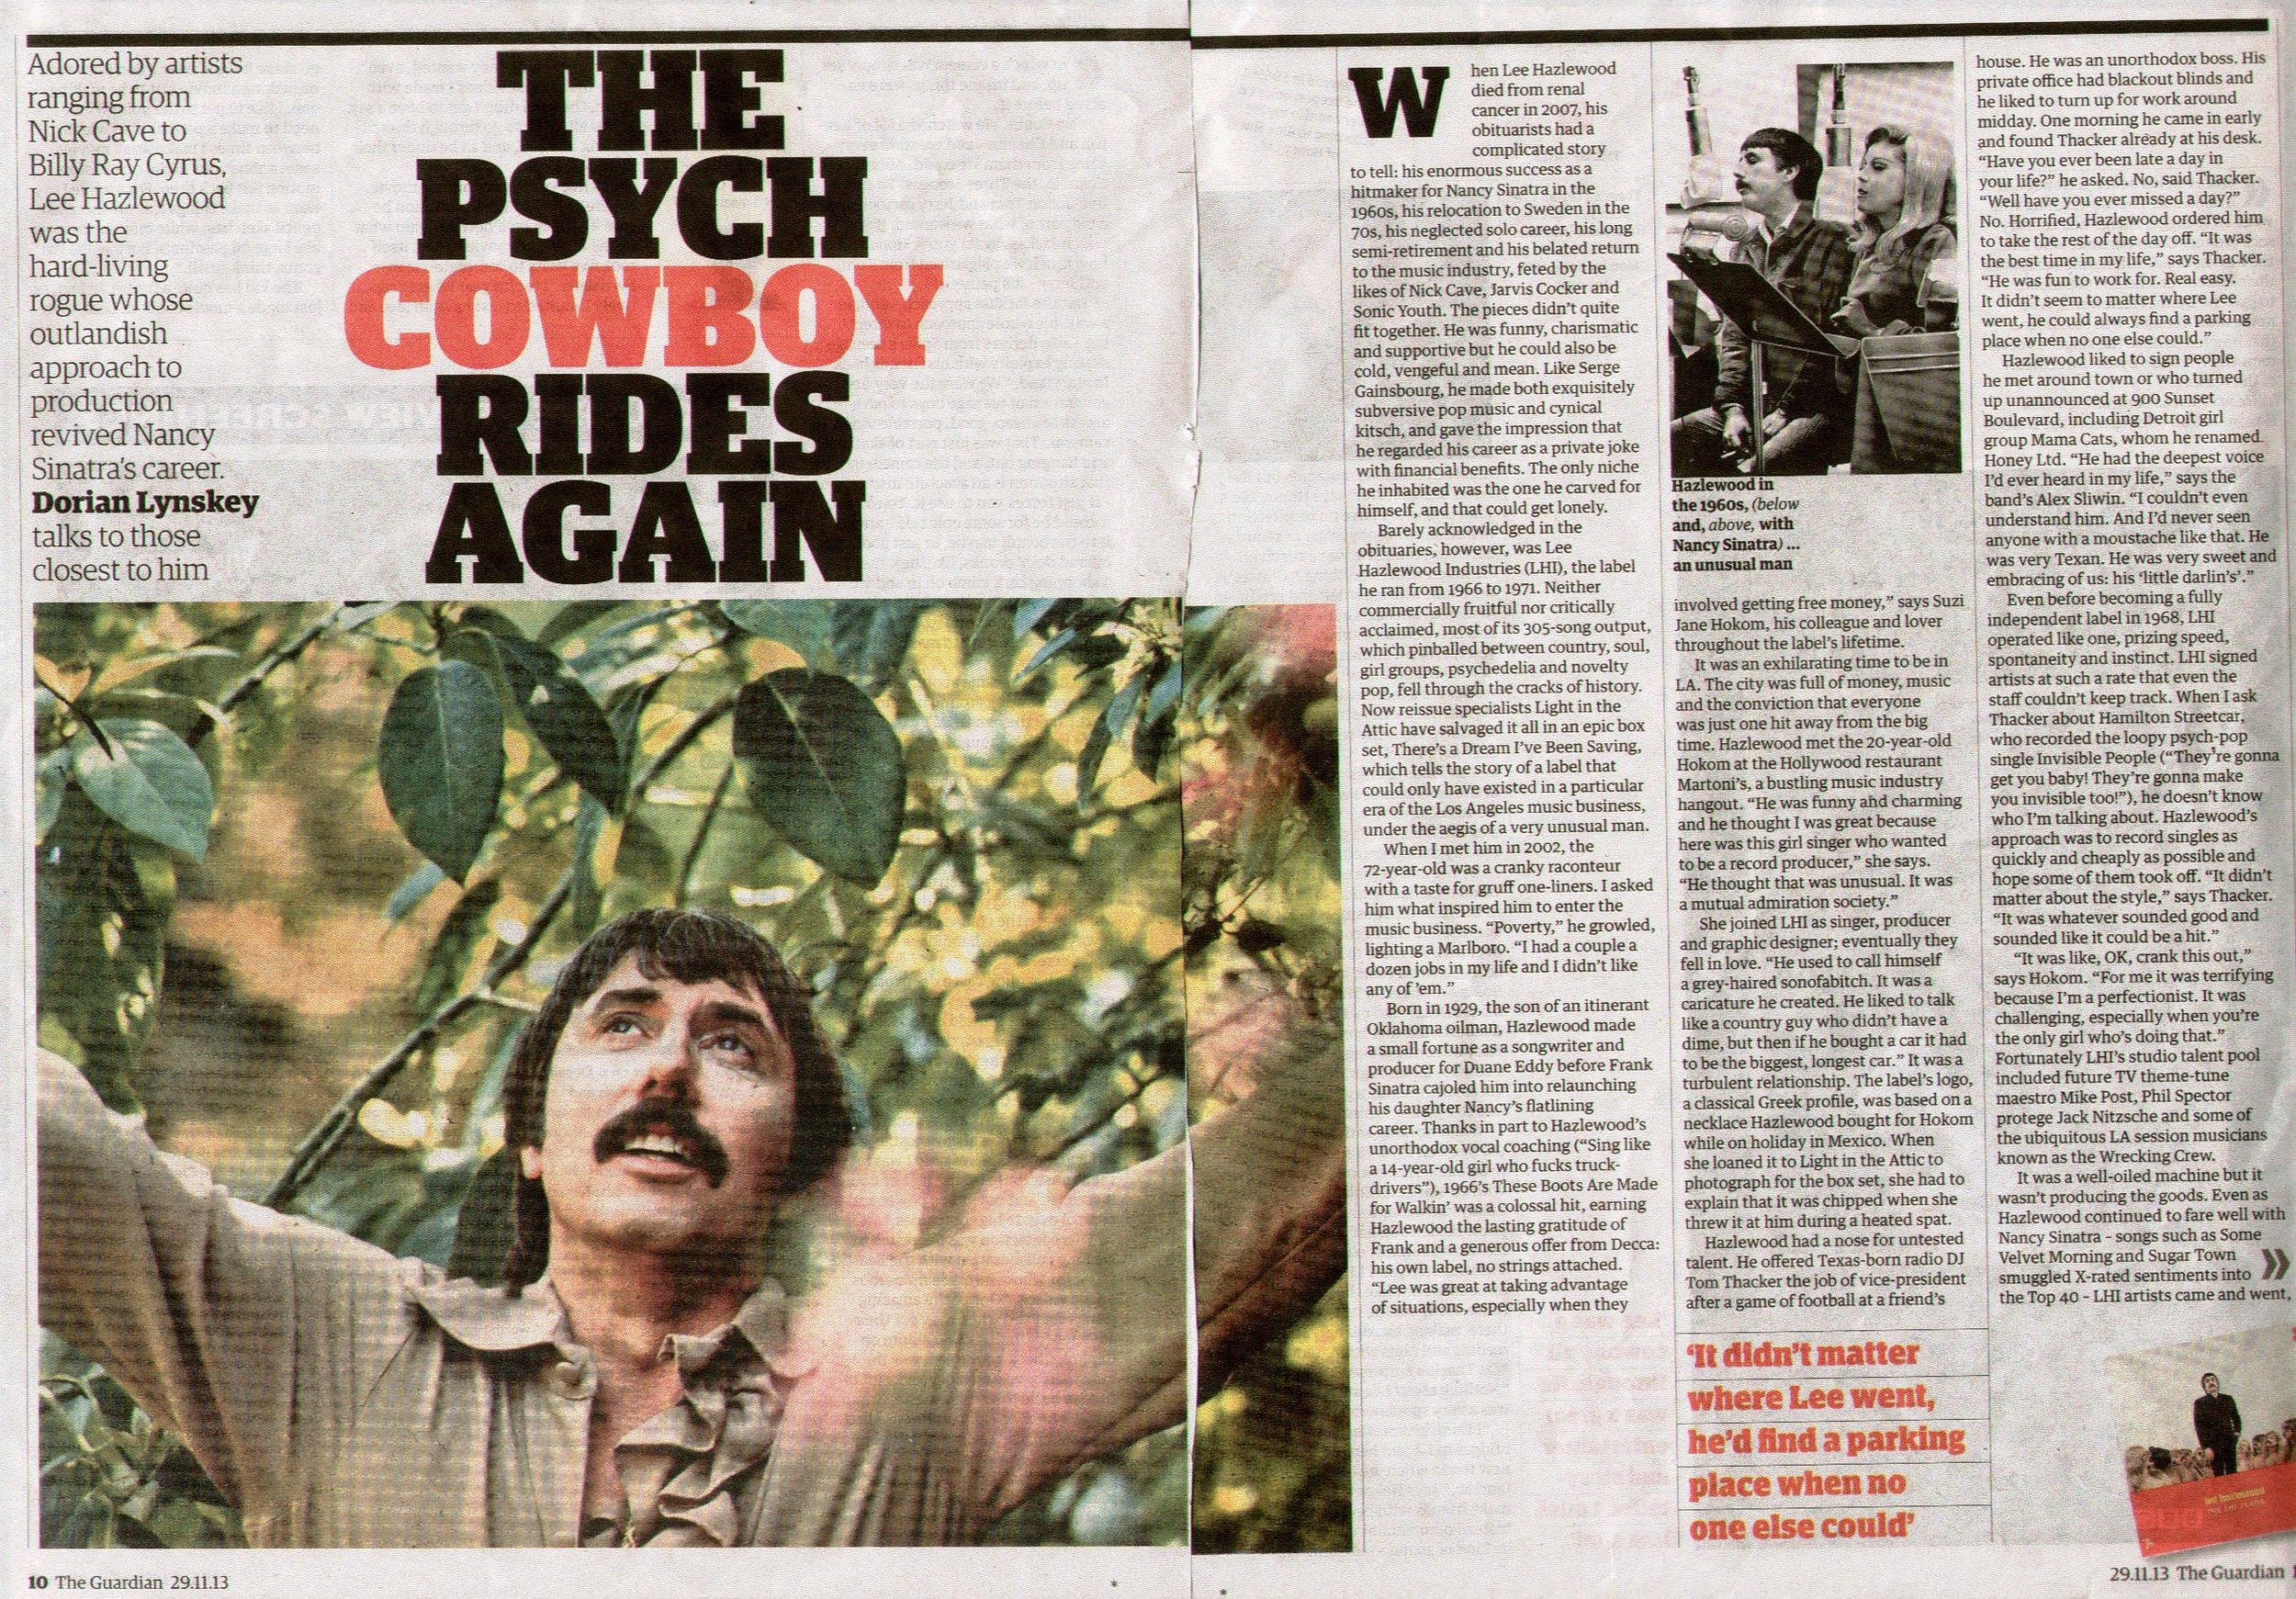 Lee Hazlewood There's A Dream I've Been Saving: Lee Hazlewood Industries,  The Guardian ,  pt 1  London Nov. 2013